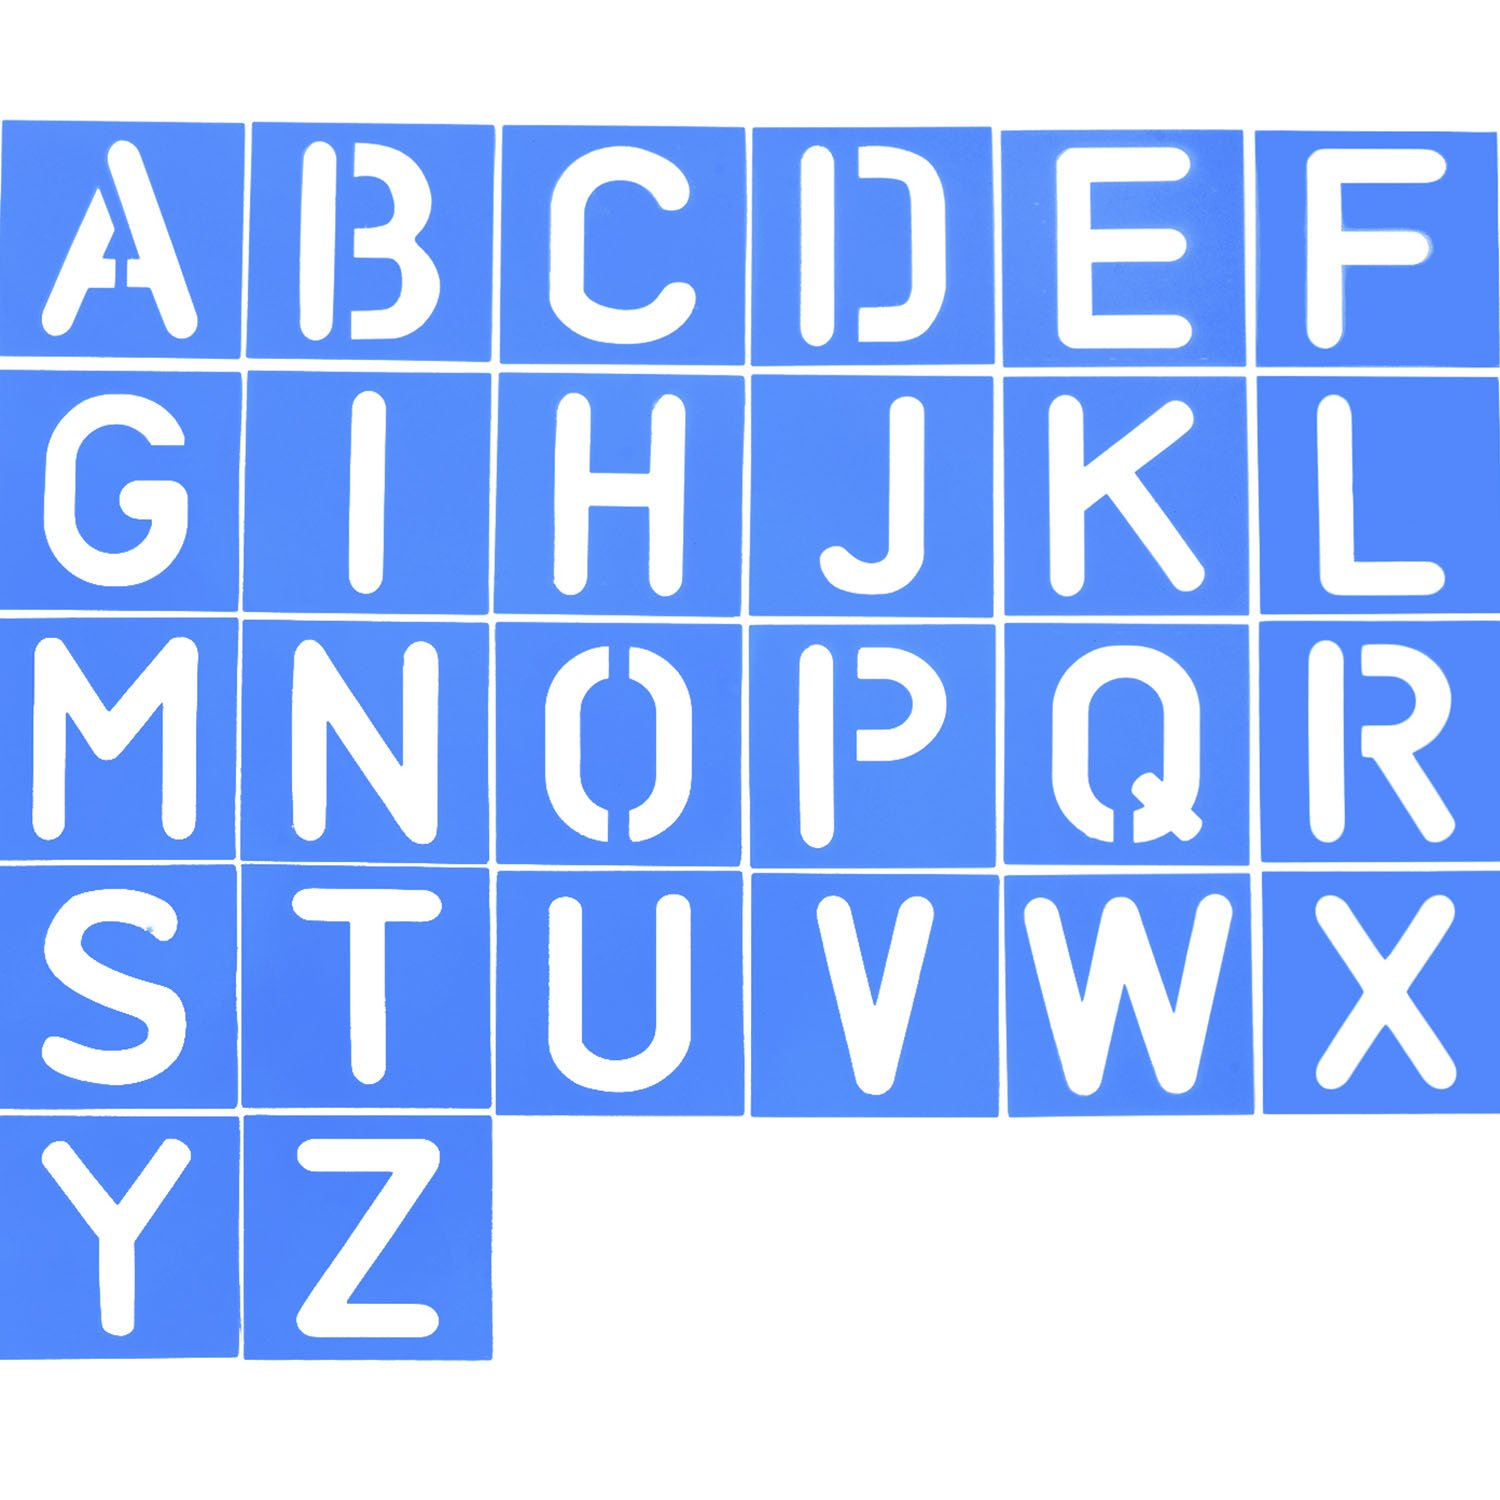 Shappy 26 Pieces Plastic Letter Stencil Alphabet Stencils Set for Painting Learning DIY, Blue 4336890683